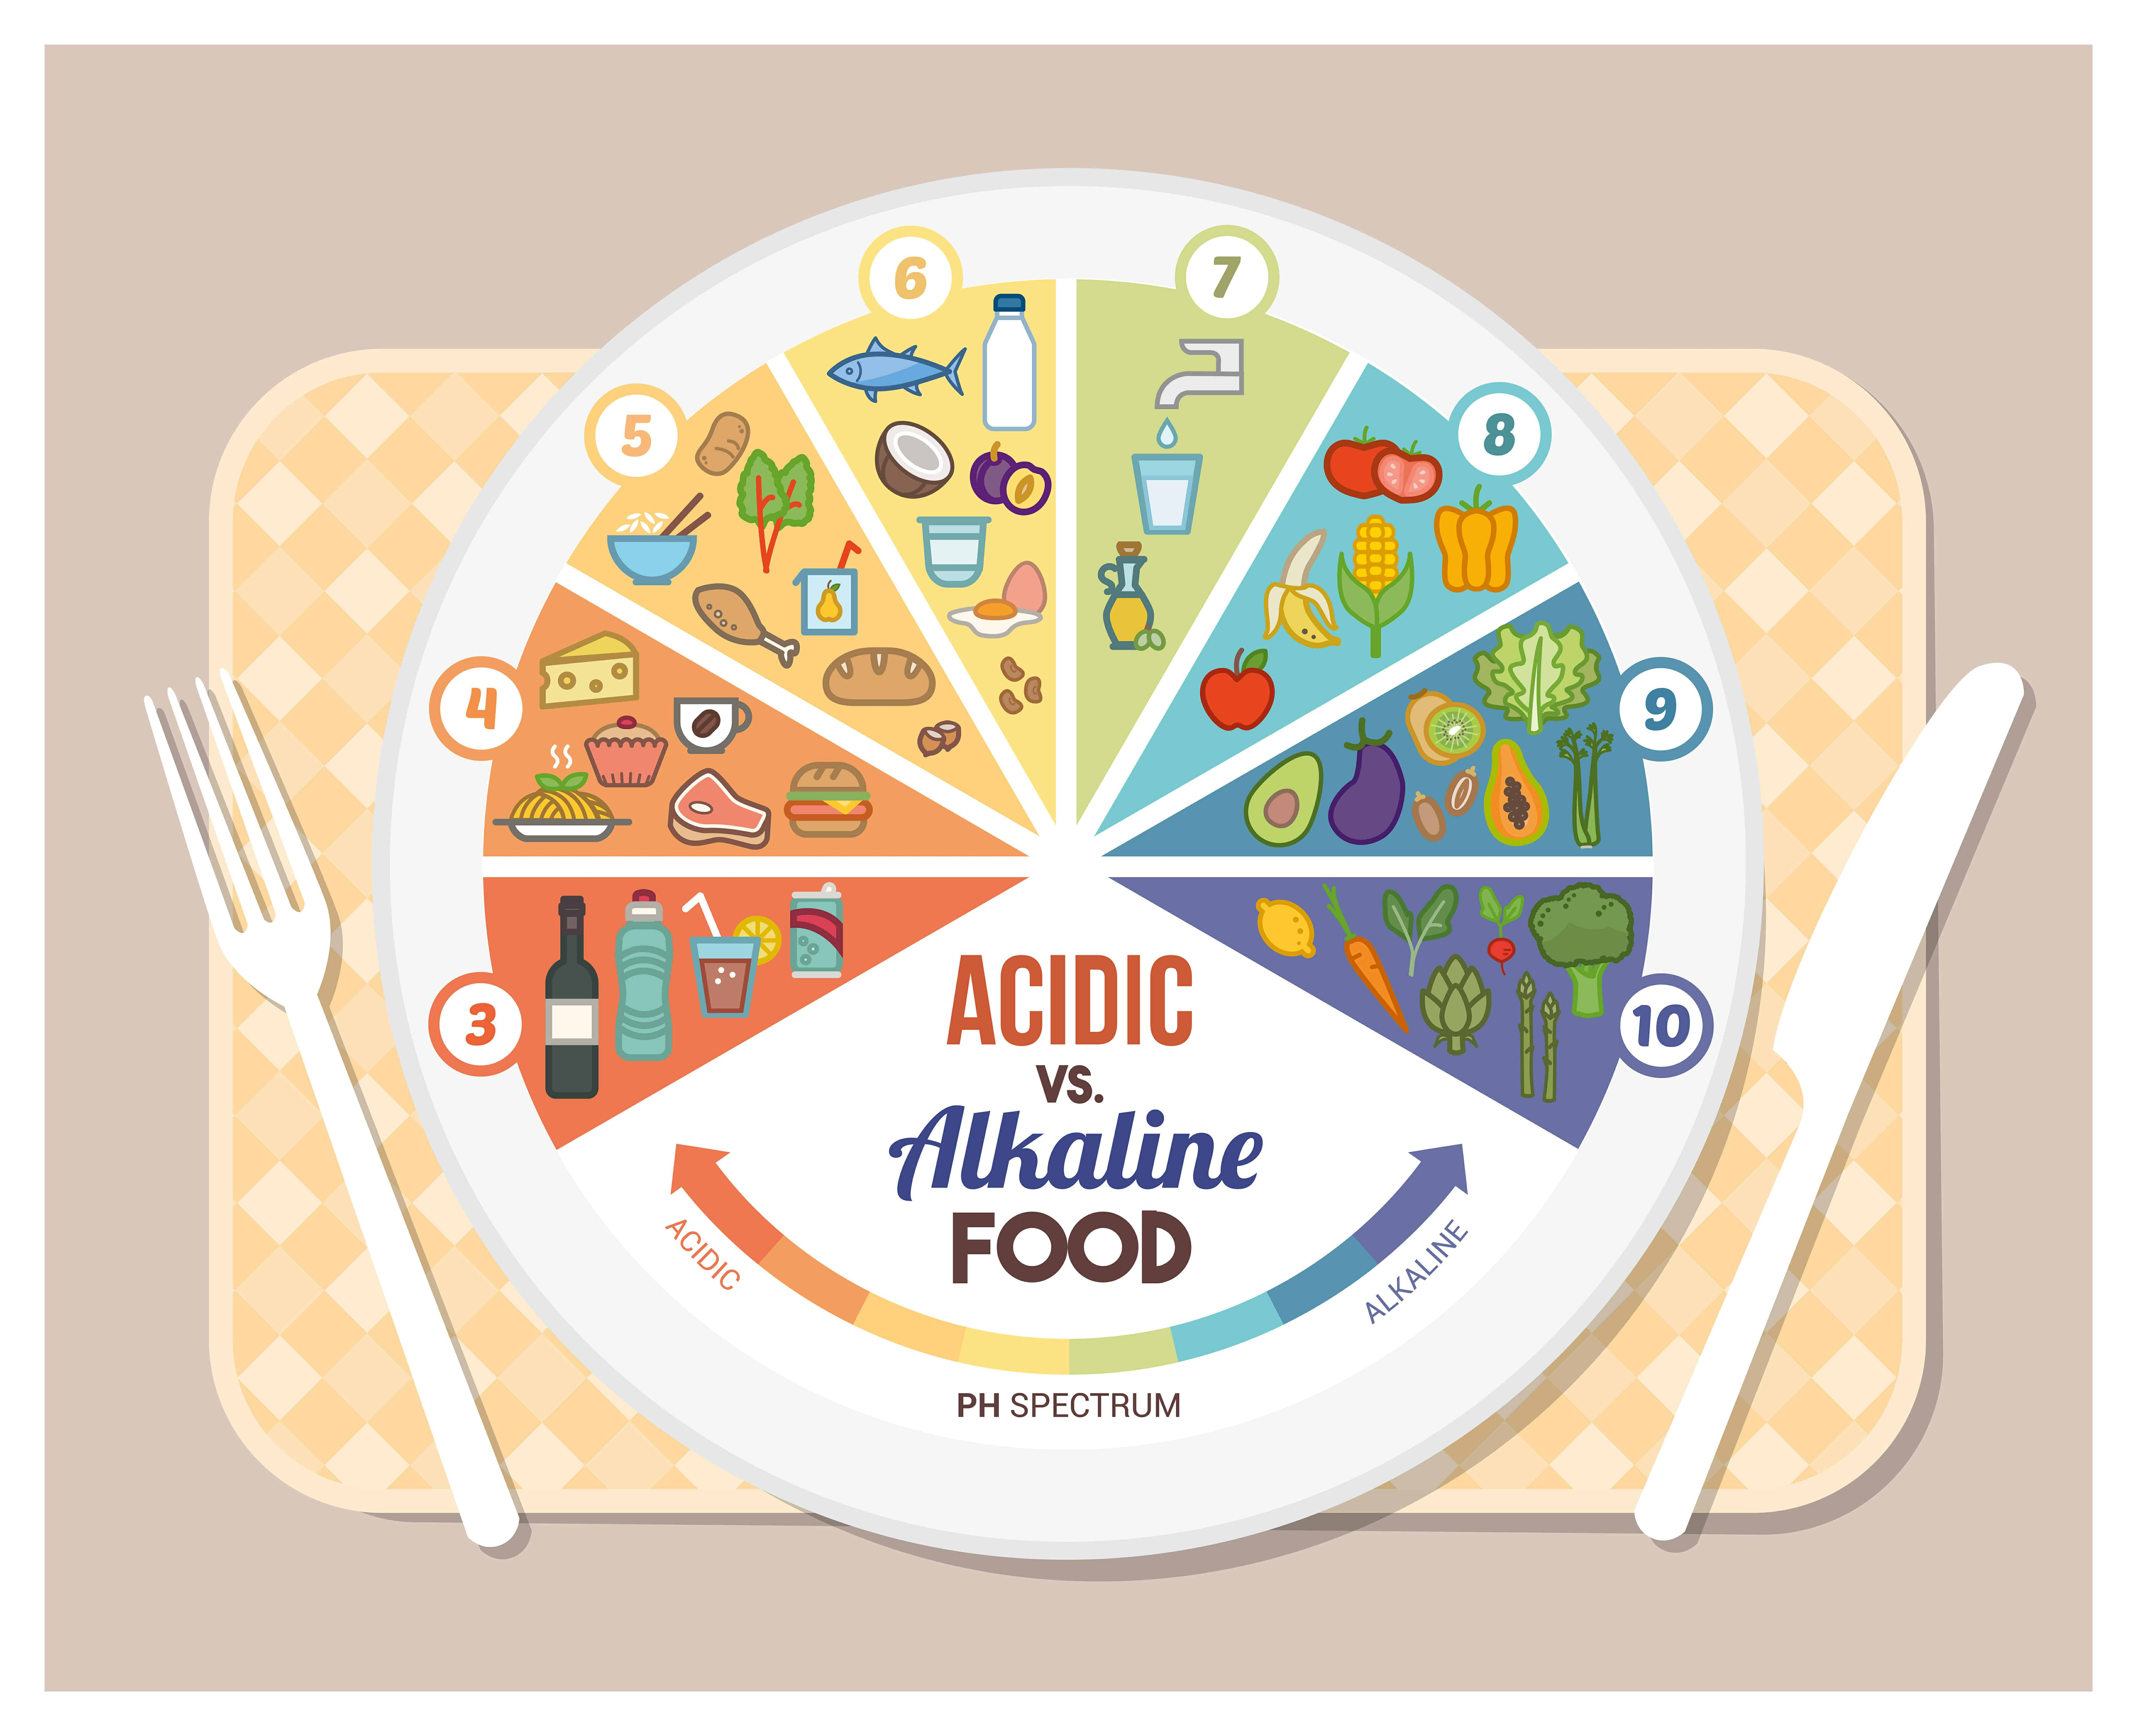 Alkaline vs. Acidic Foods-What are Differences and Which One is Better?